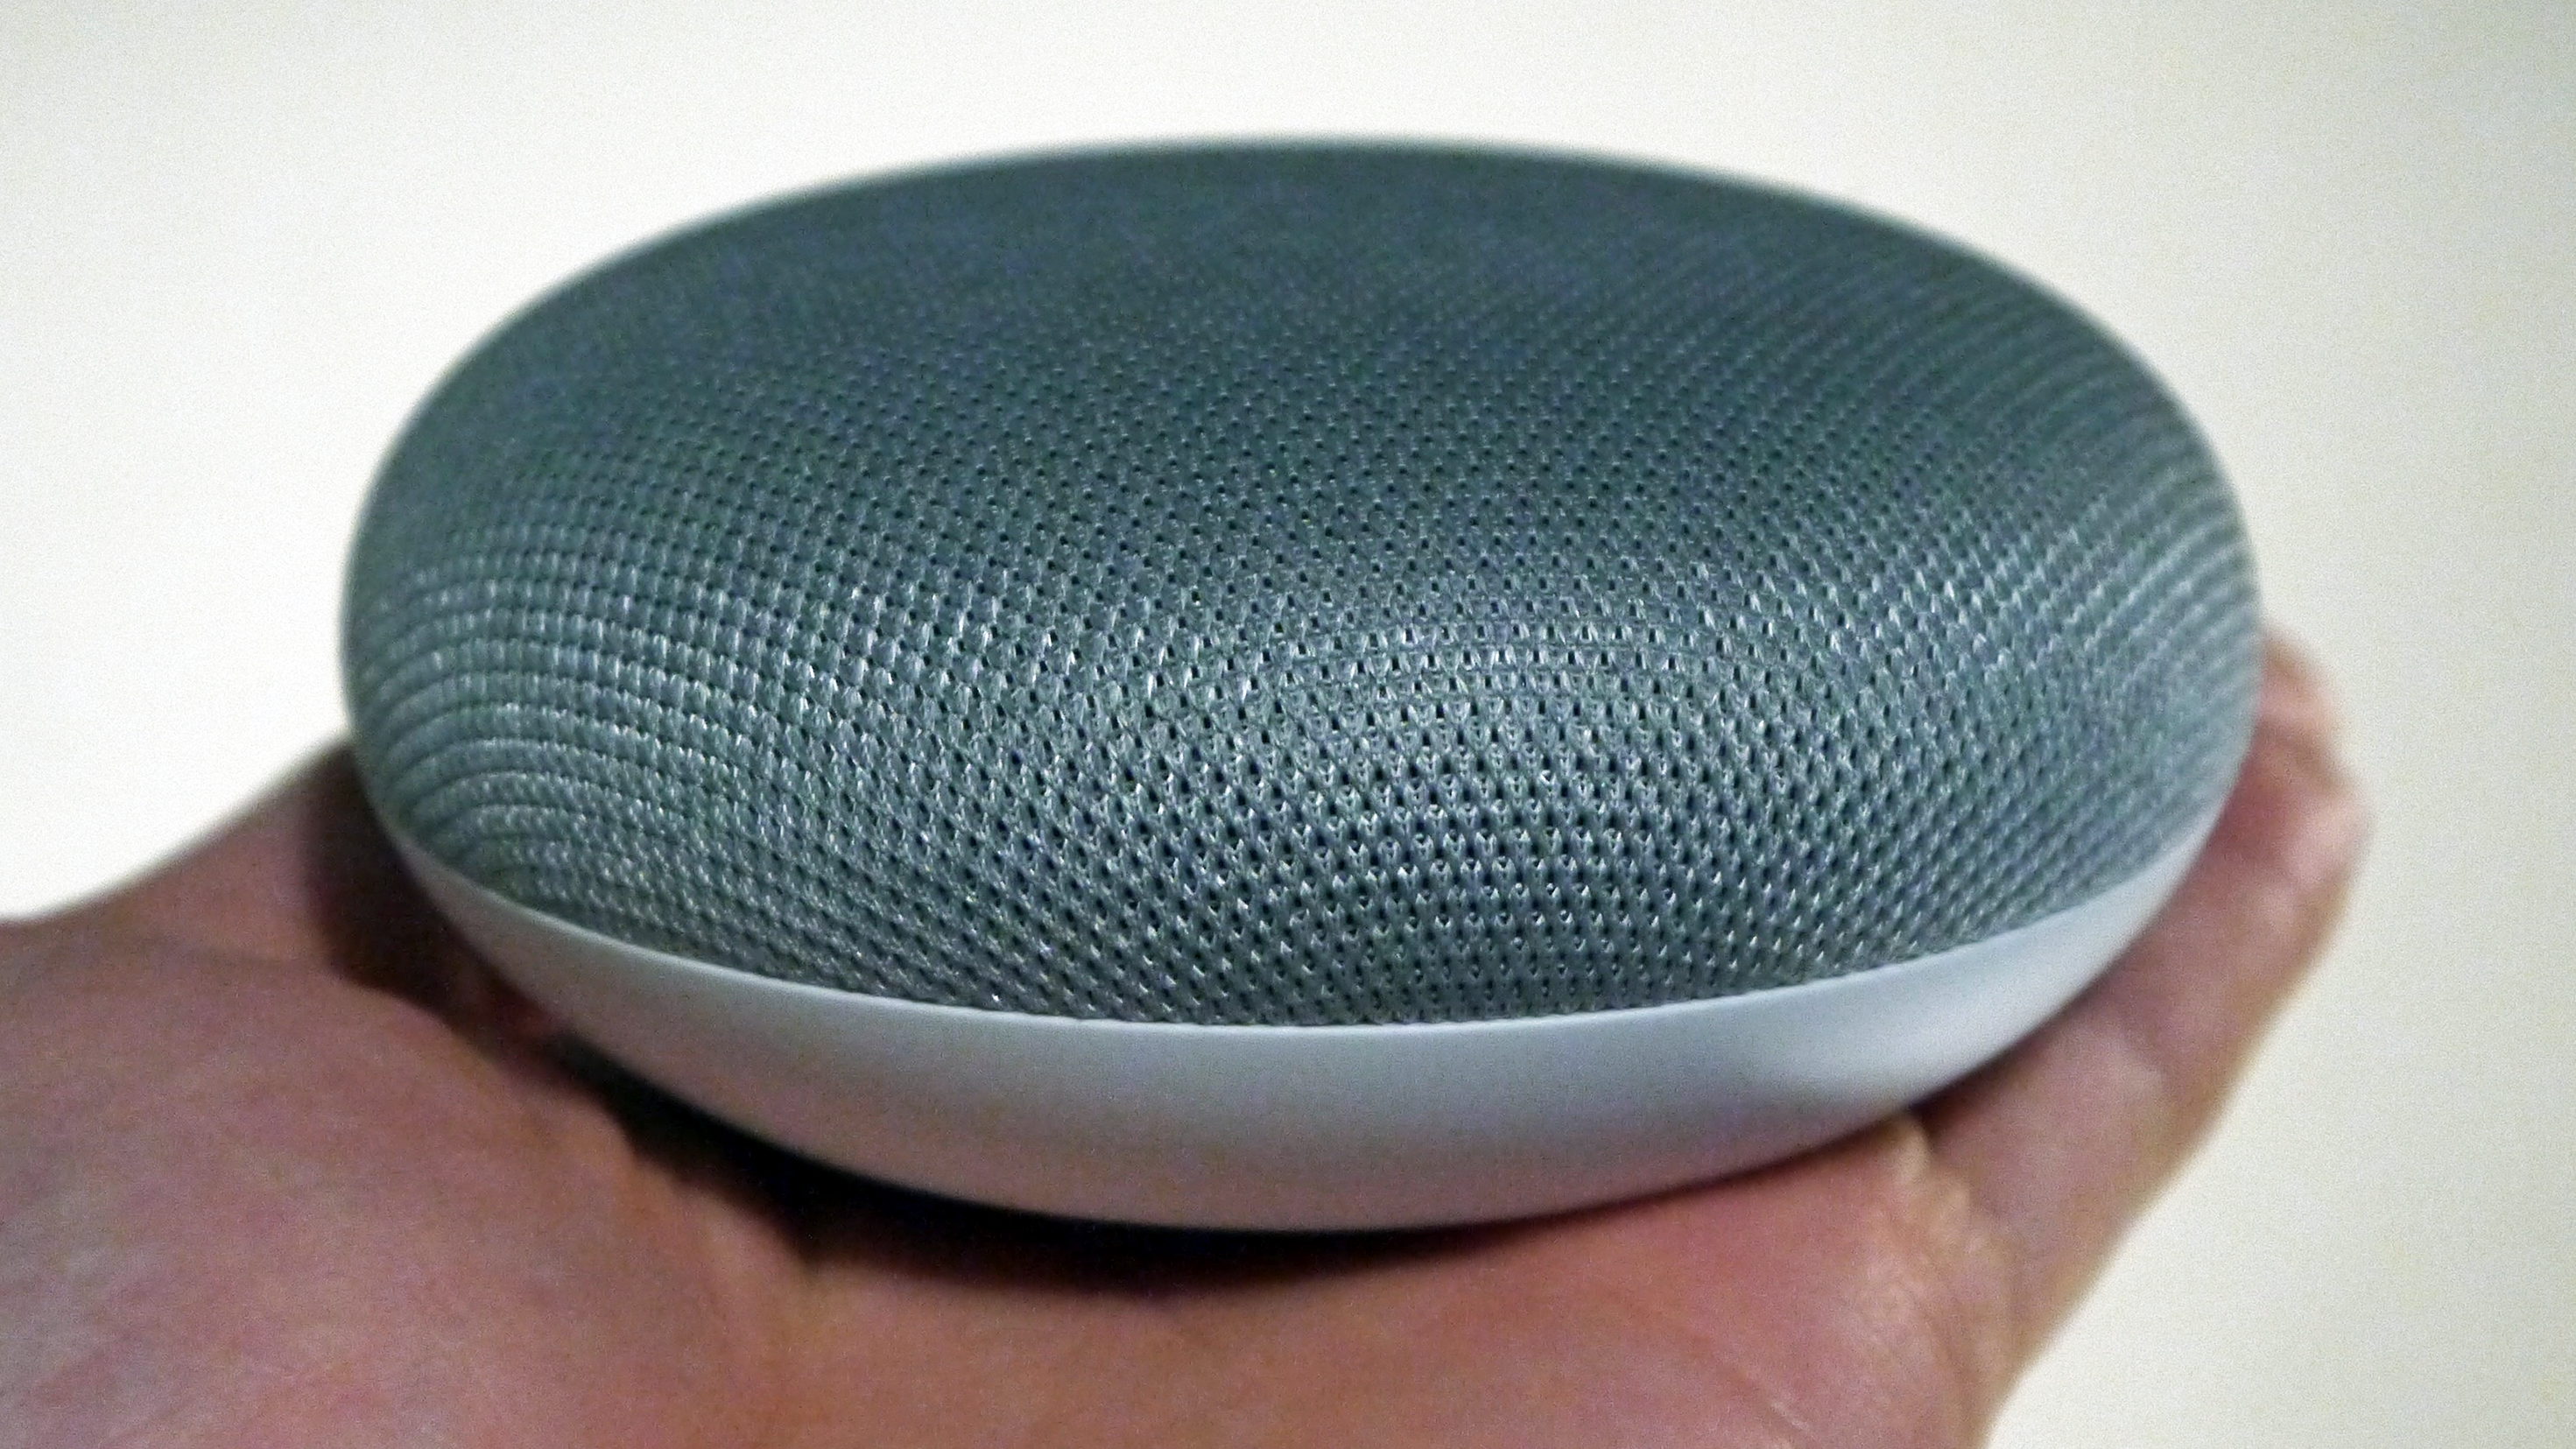 The Google Home Mini is the budget entry in Google's lineup.